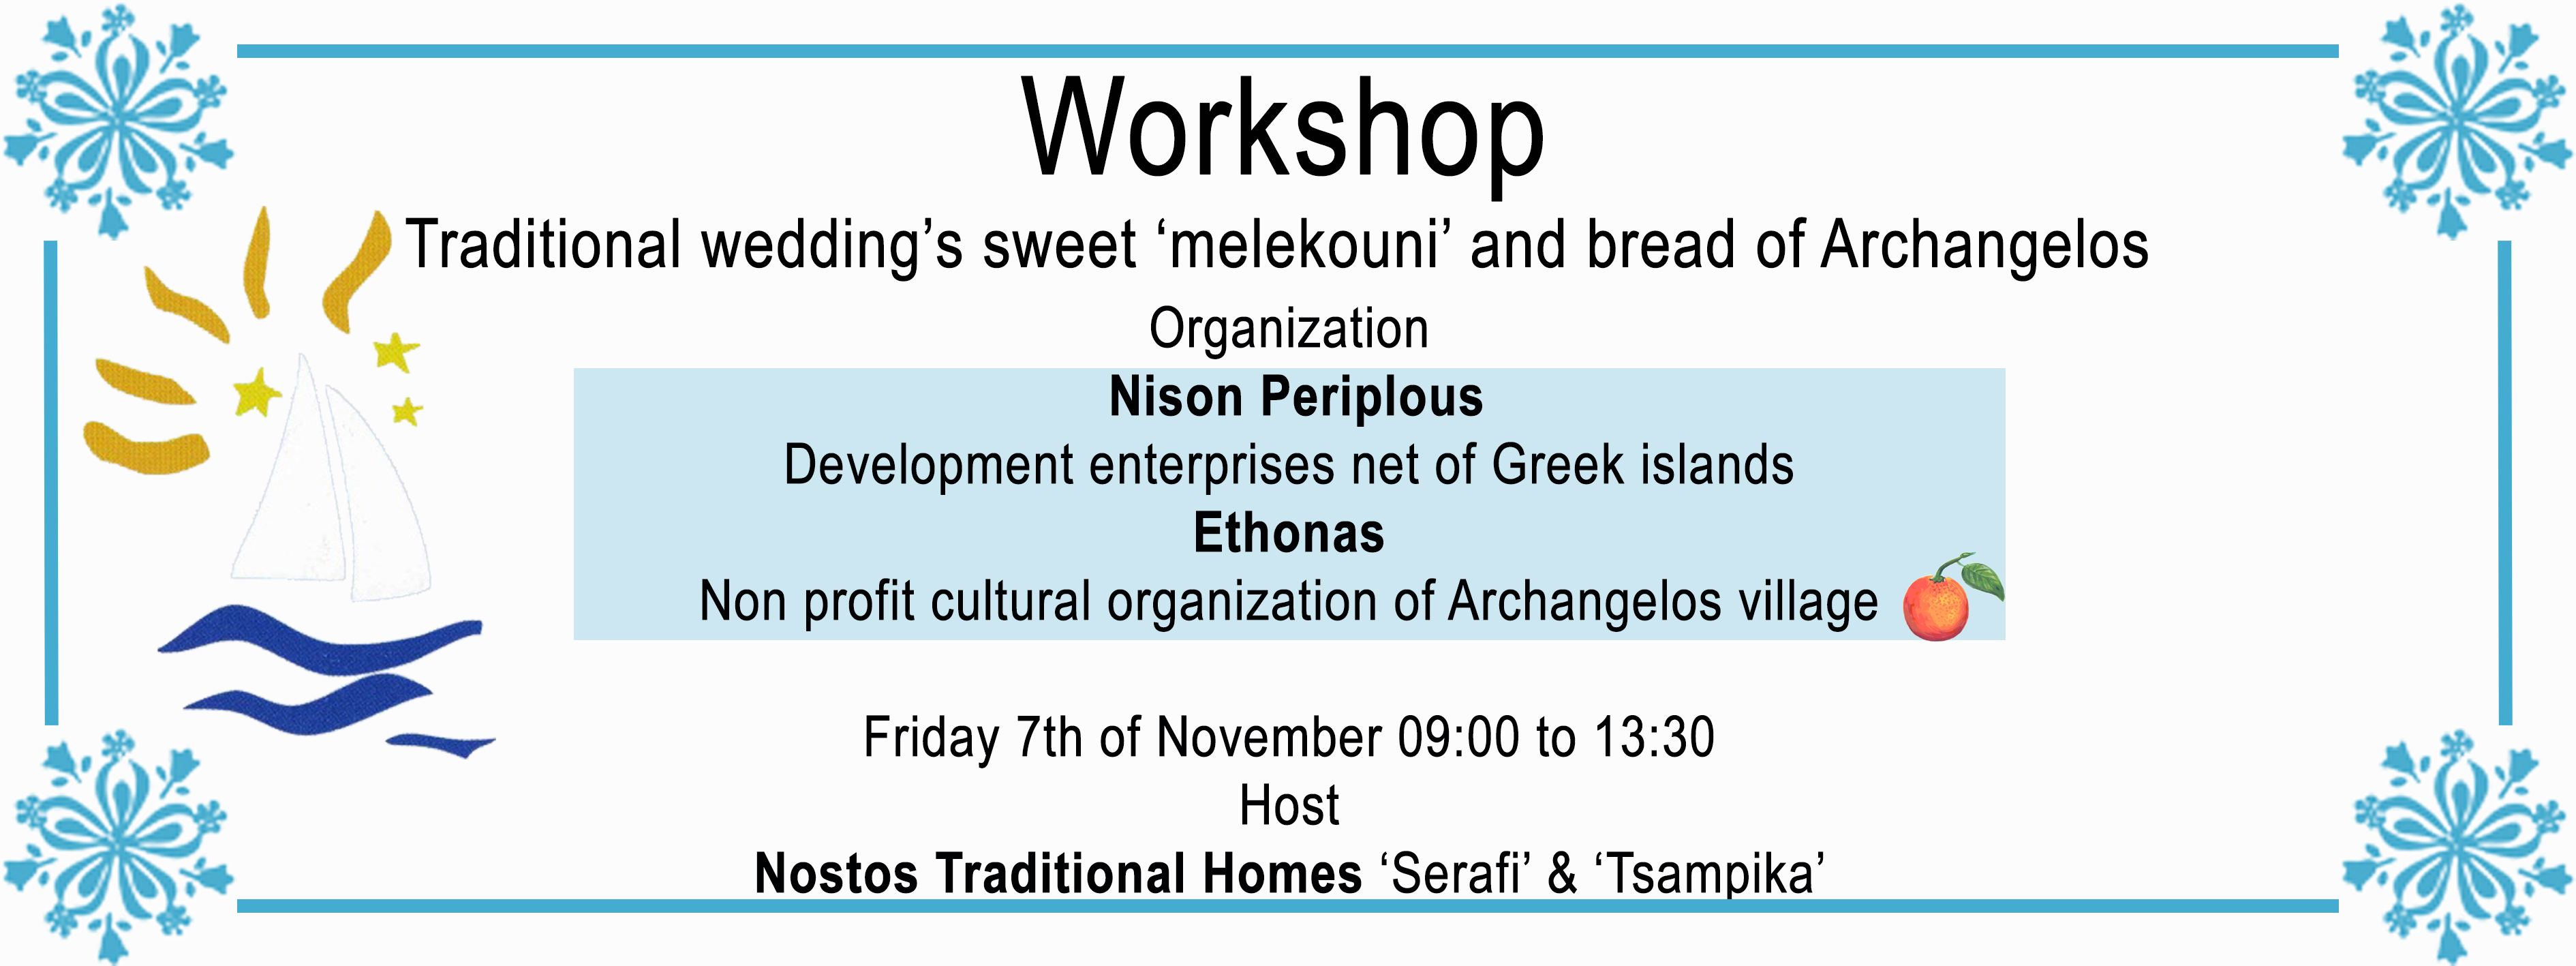 workshop nostos1